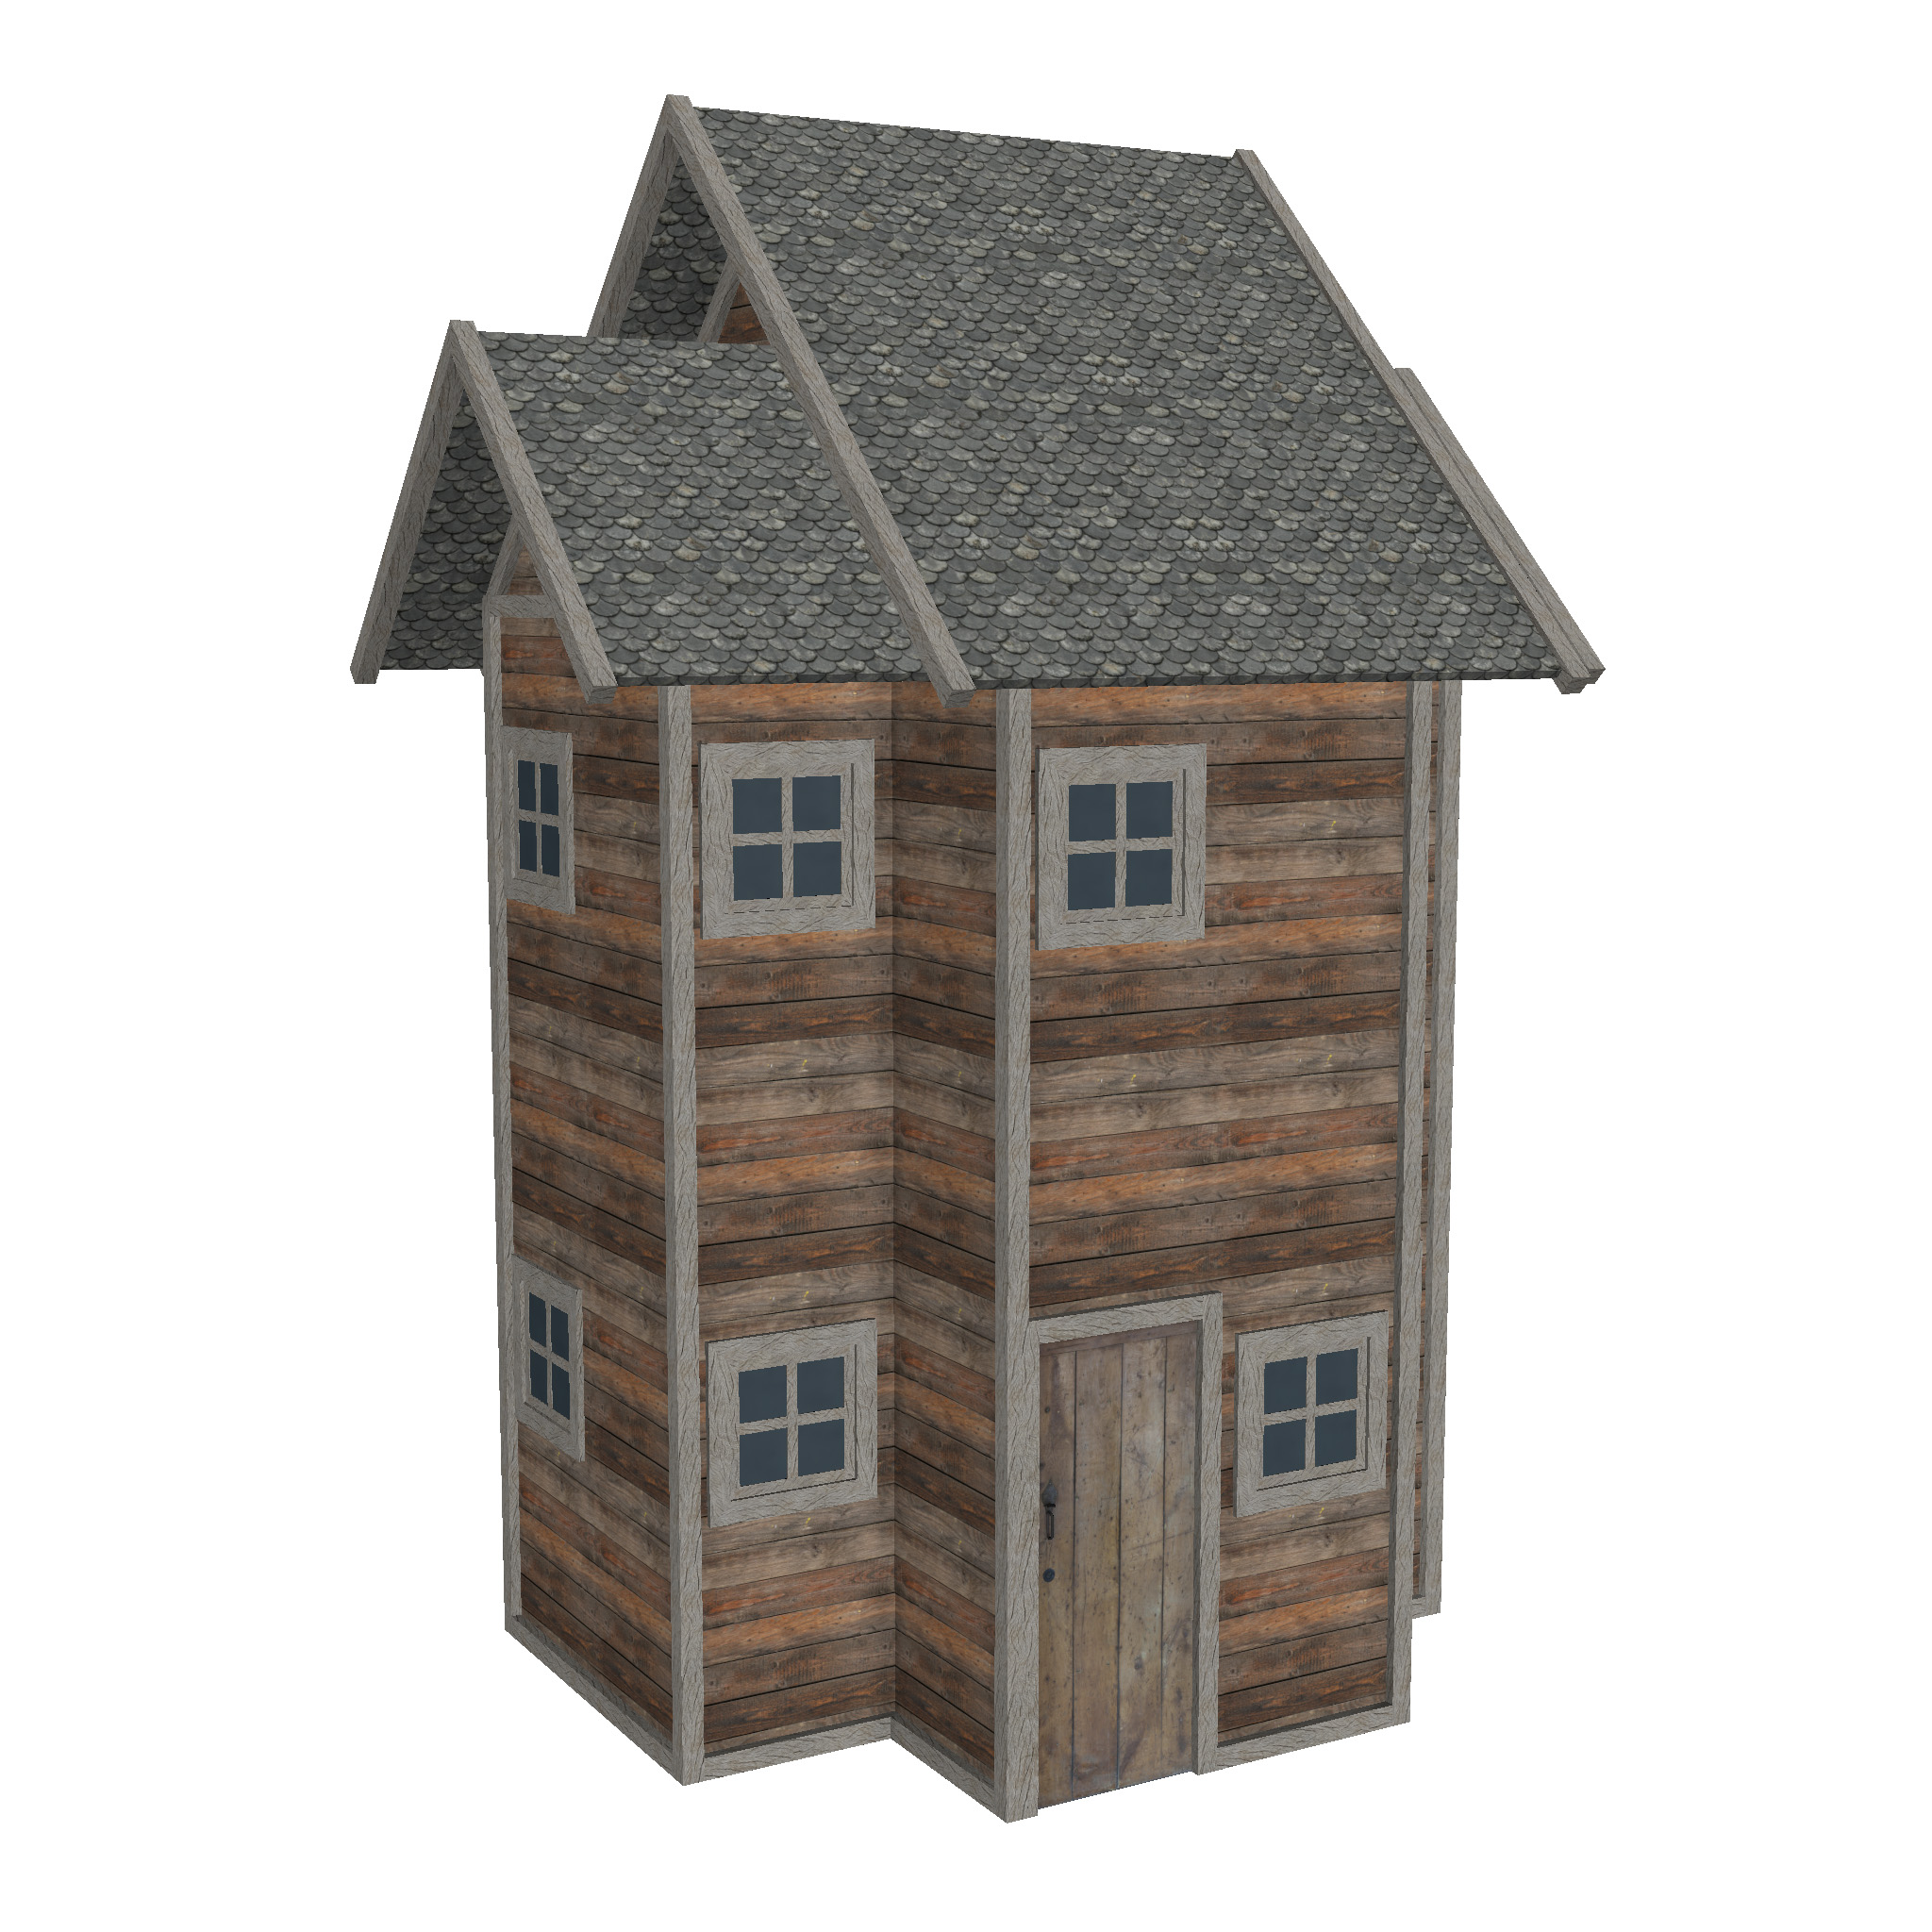 modular wood house set 3d model fbx ma mb 271435